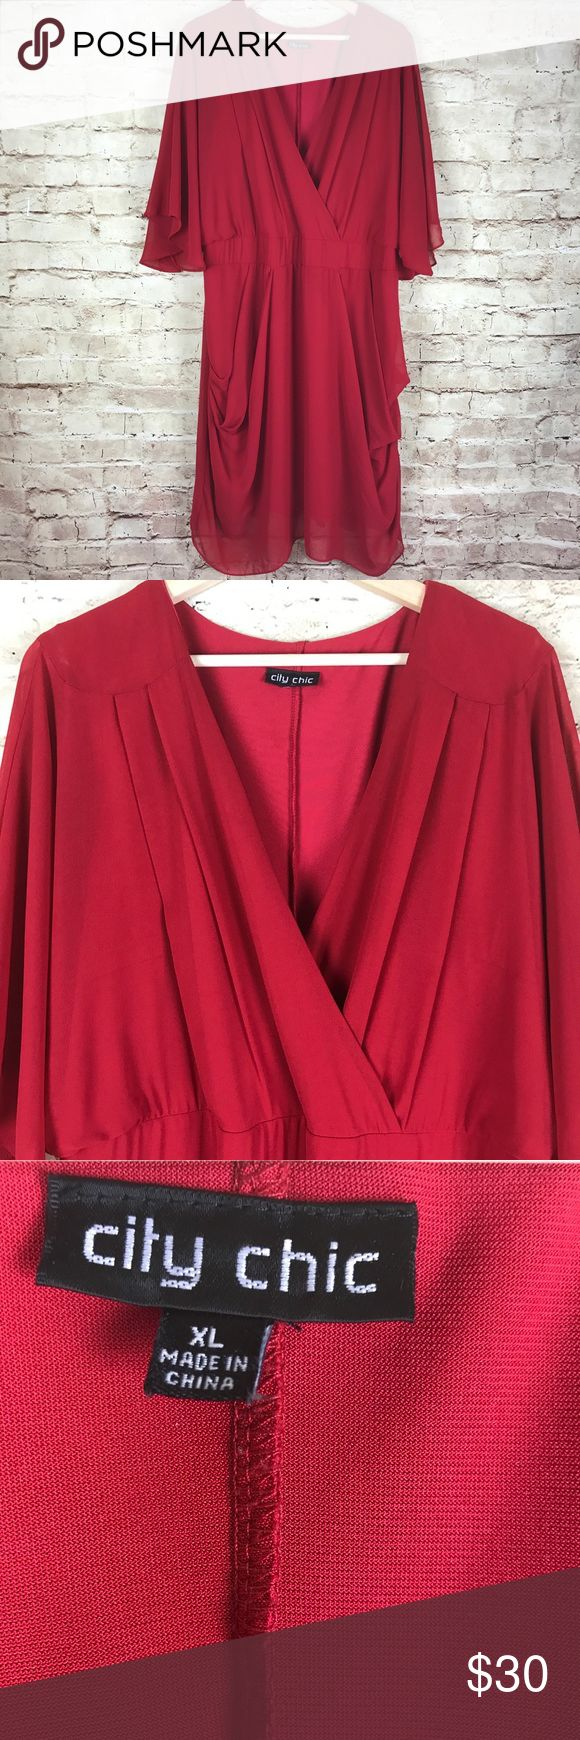 City Chic Red Empire Waist Dress Plus Size XL City Chic Women's Dress  Red  Sheer  Ruched  Empire Waist  Short Sleeve  Plus Size XL Approximate measurements: chest 23 inches; sleeve 18 inches; length  (shoulder to hem) 42 inches City Chic Dresses